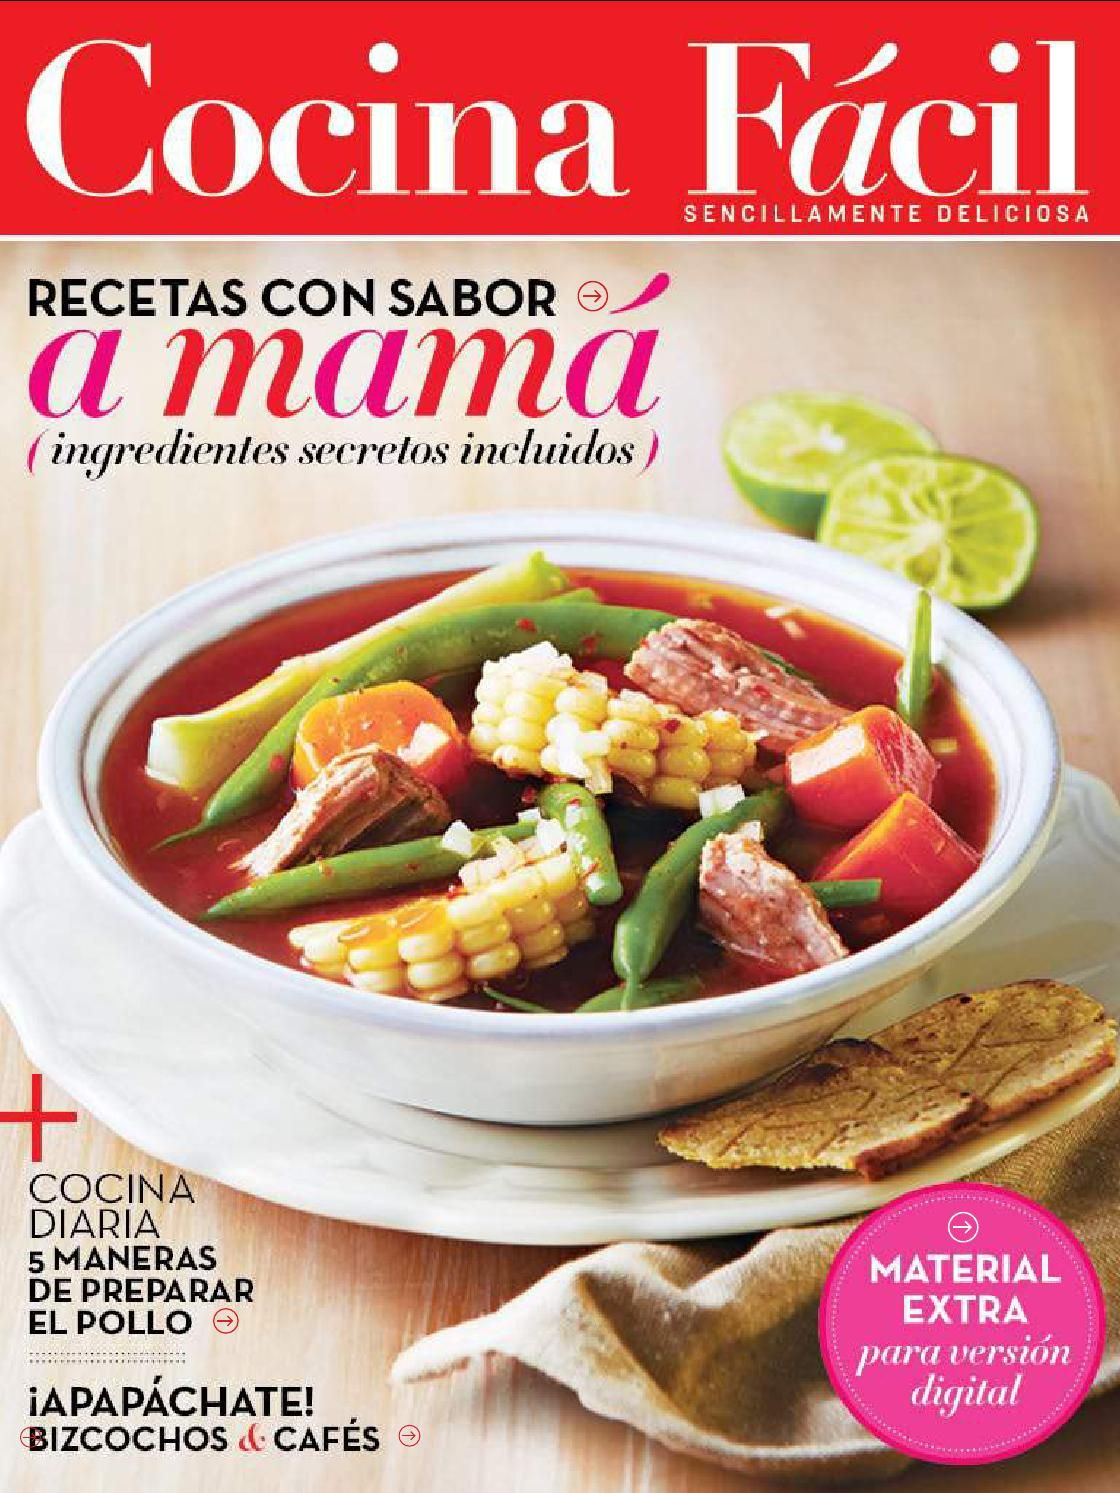 Cocina facil mayo 2015 libros thermomix pinterest cocina f cil cocinas y libros - Cocina facil y saludable thermomix ...